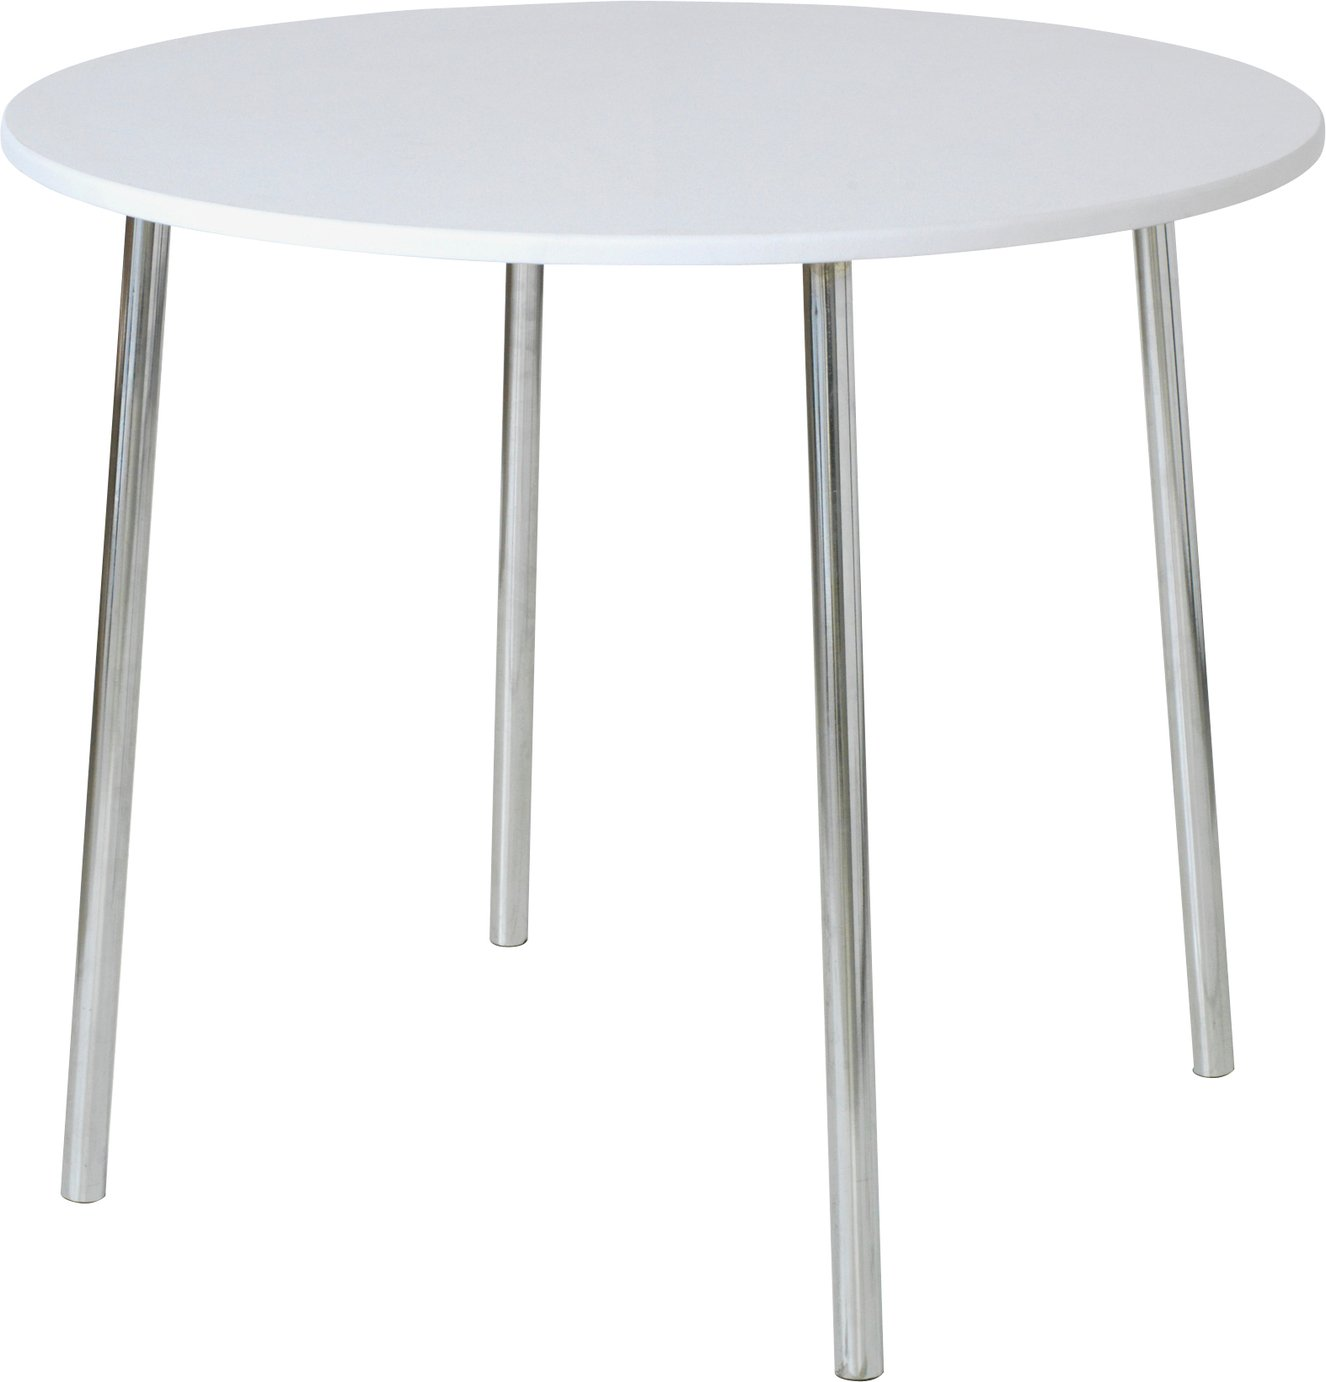 home round kitchen wood effect 2 seater dining table white